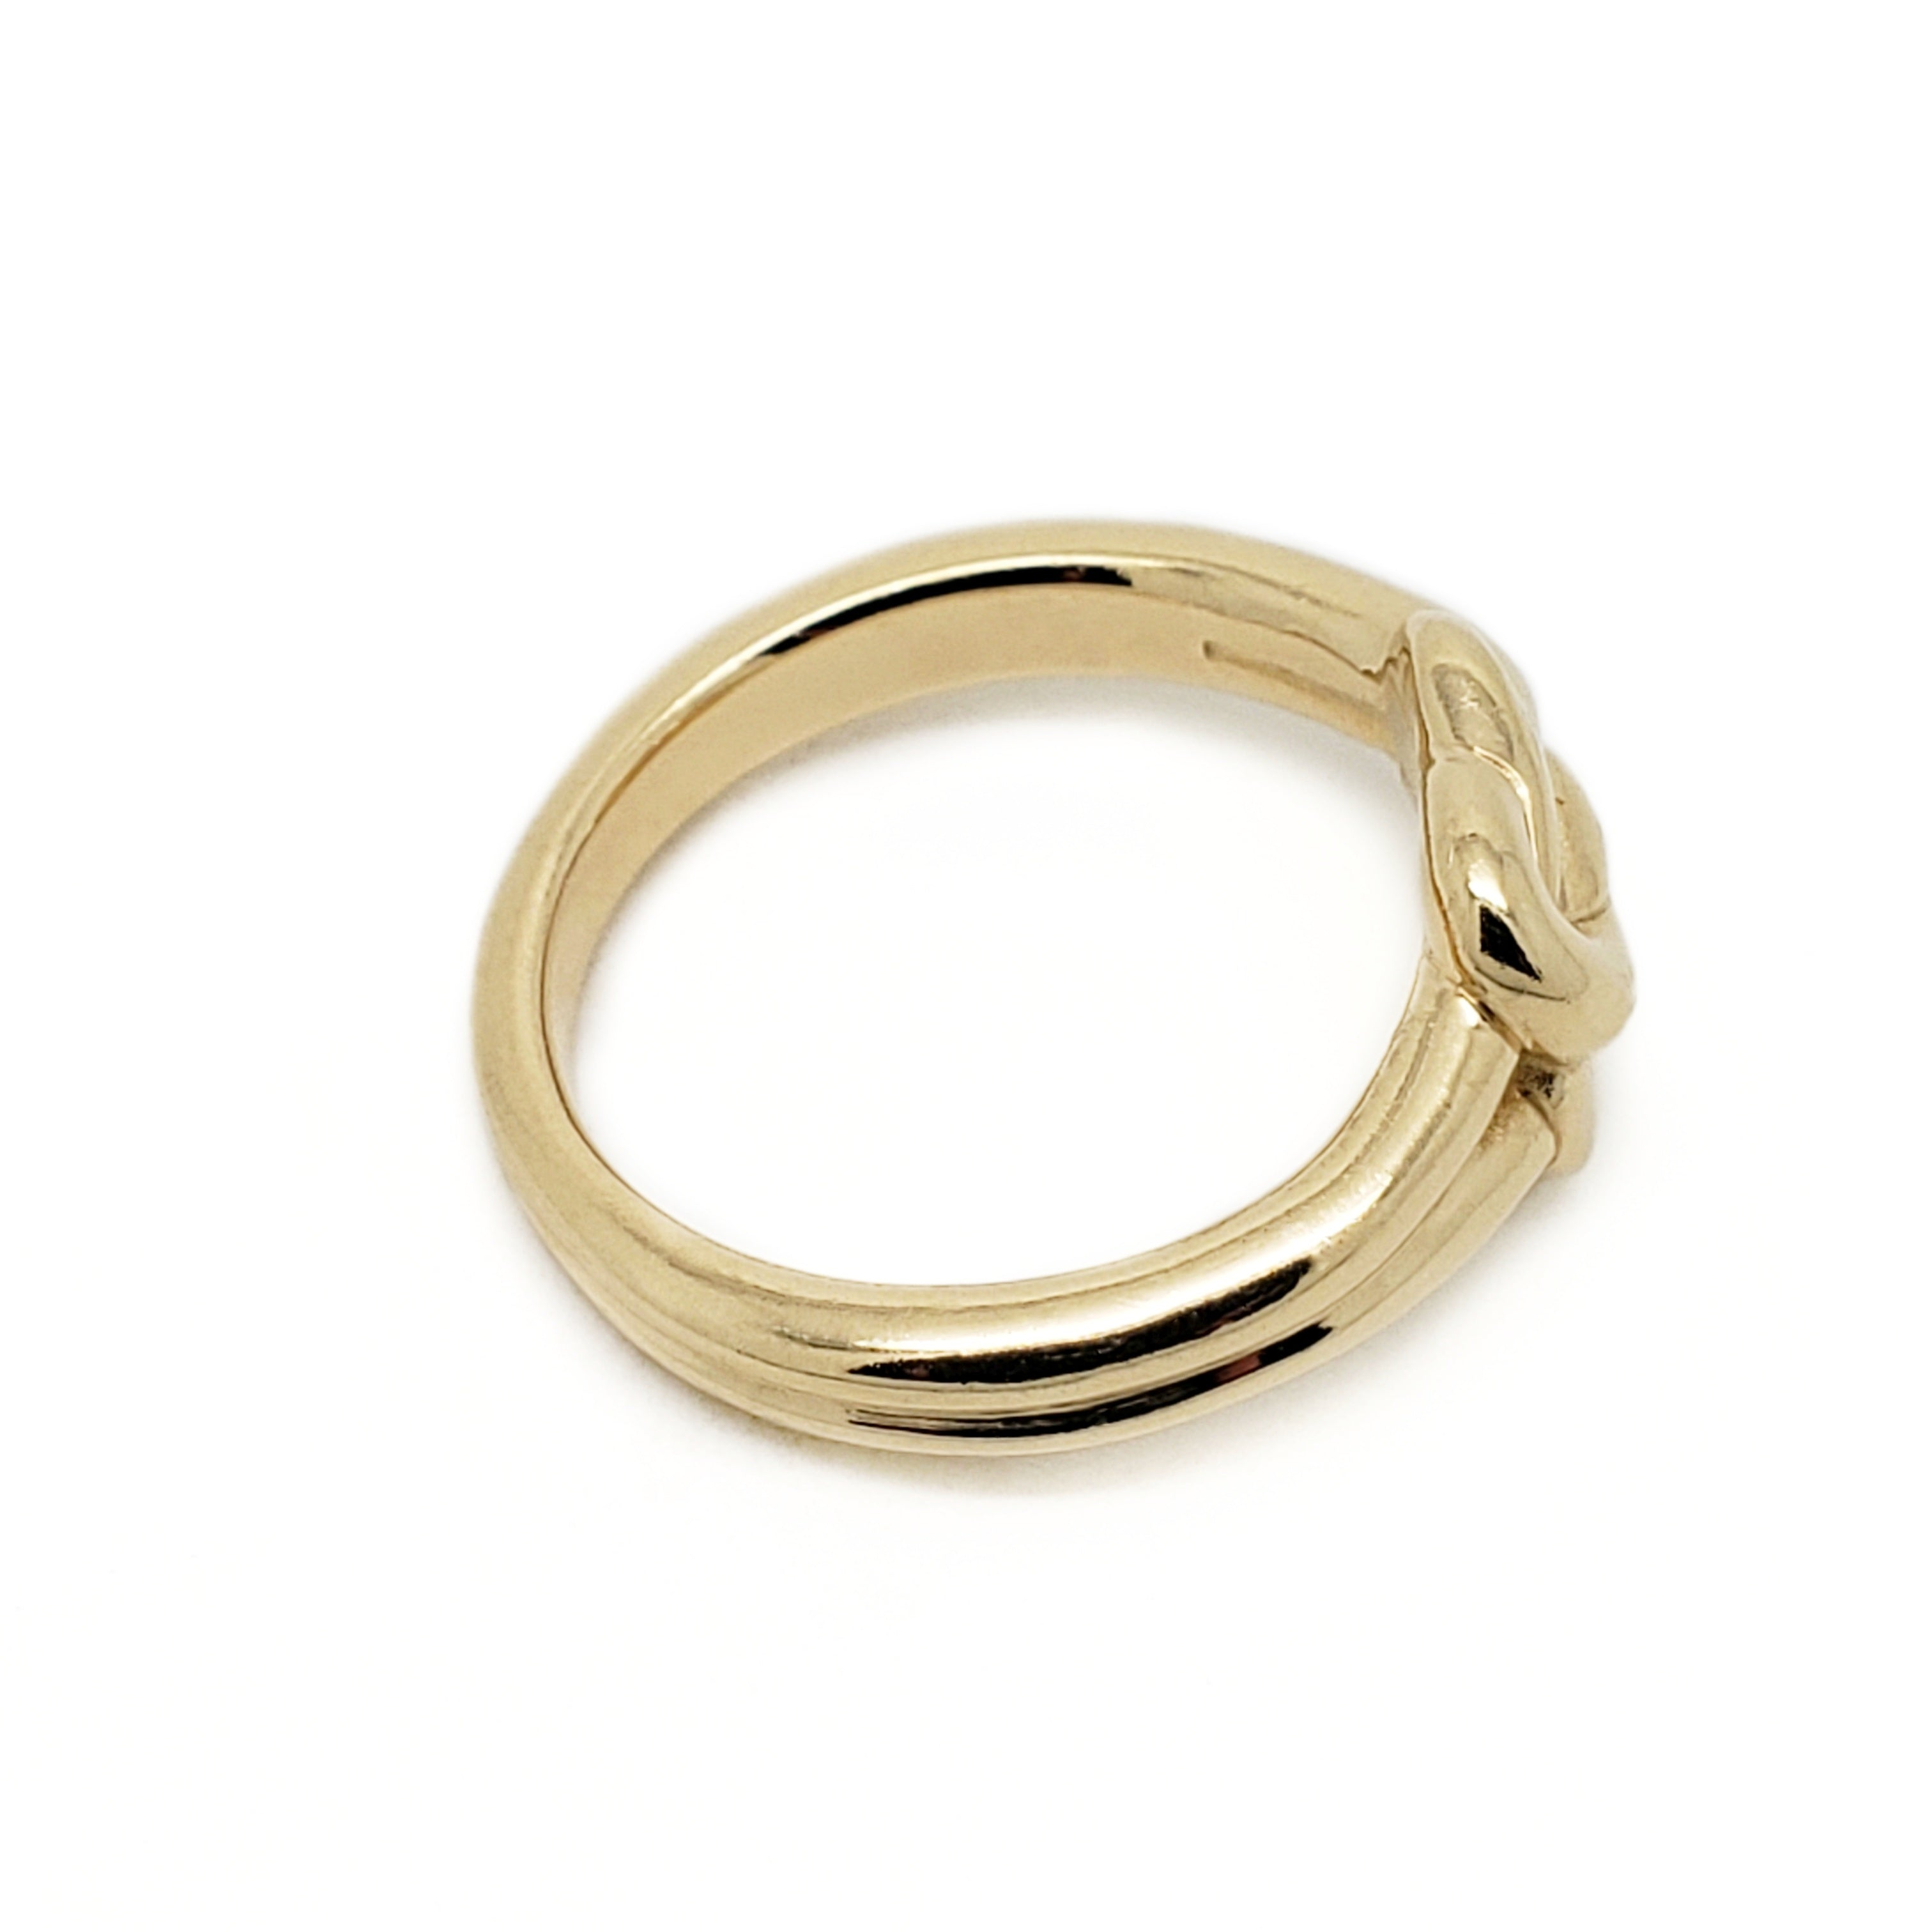 14kt yellow gold double knot wedding band era design